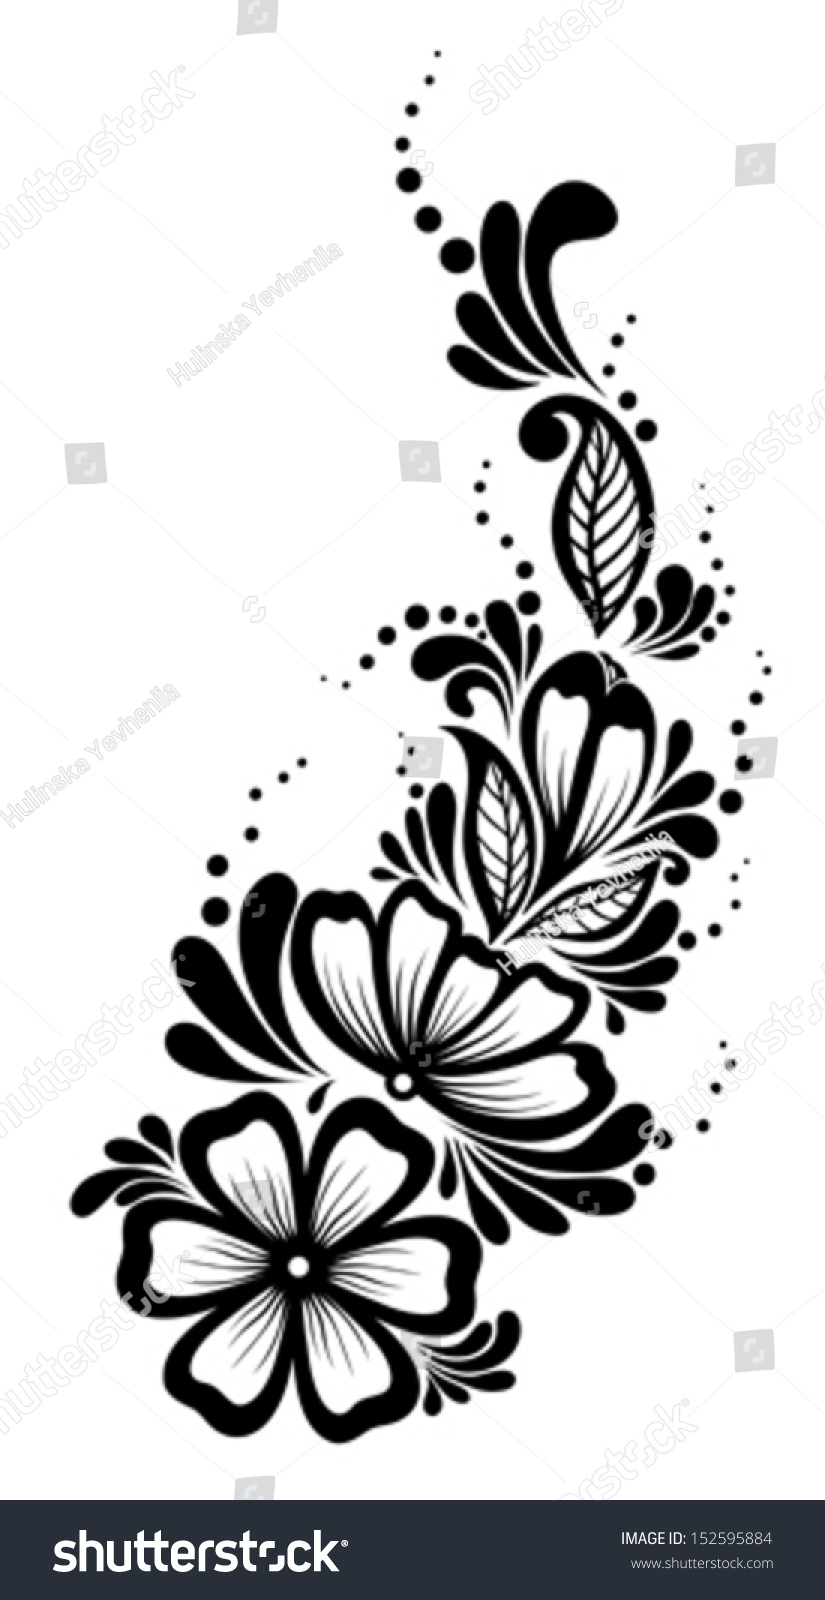 Beautiful Floral Element Blackandwhite Flowers Leaves